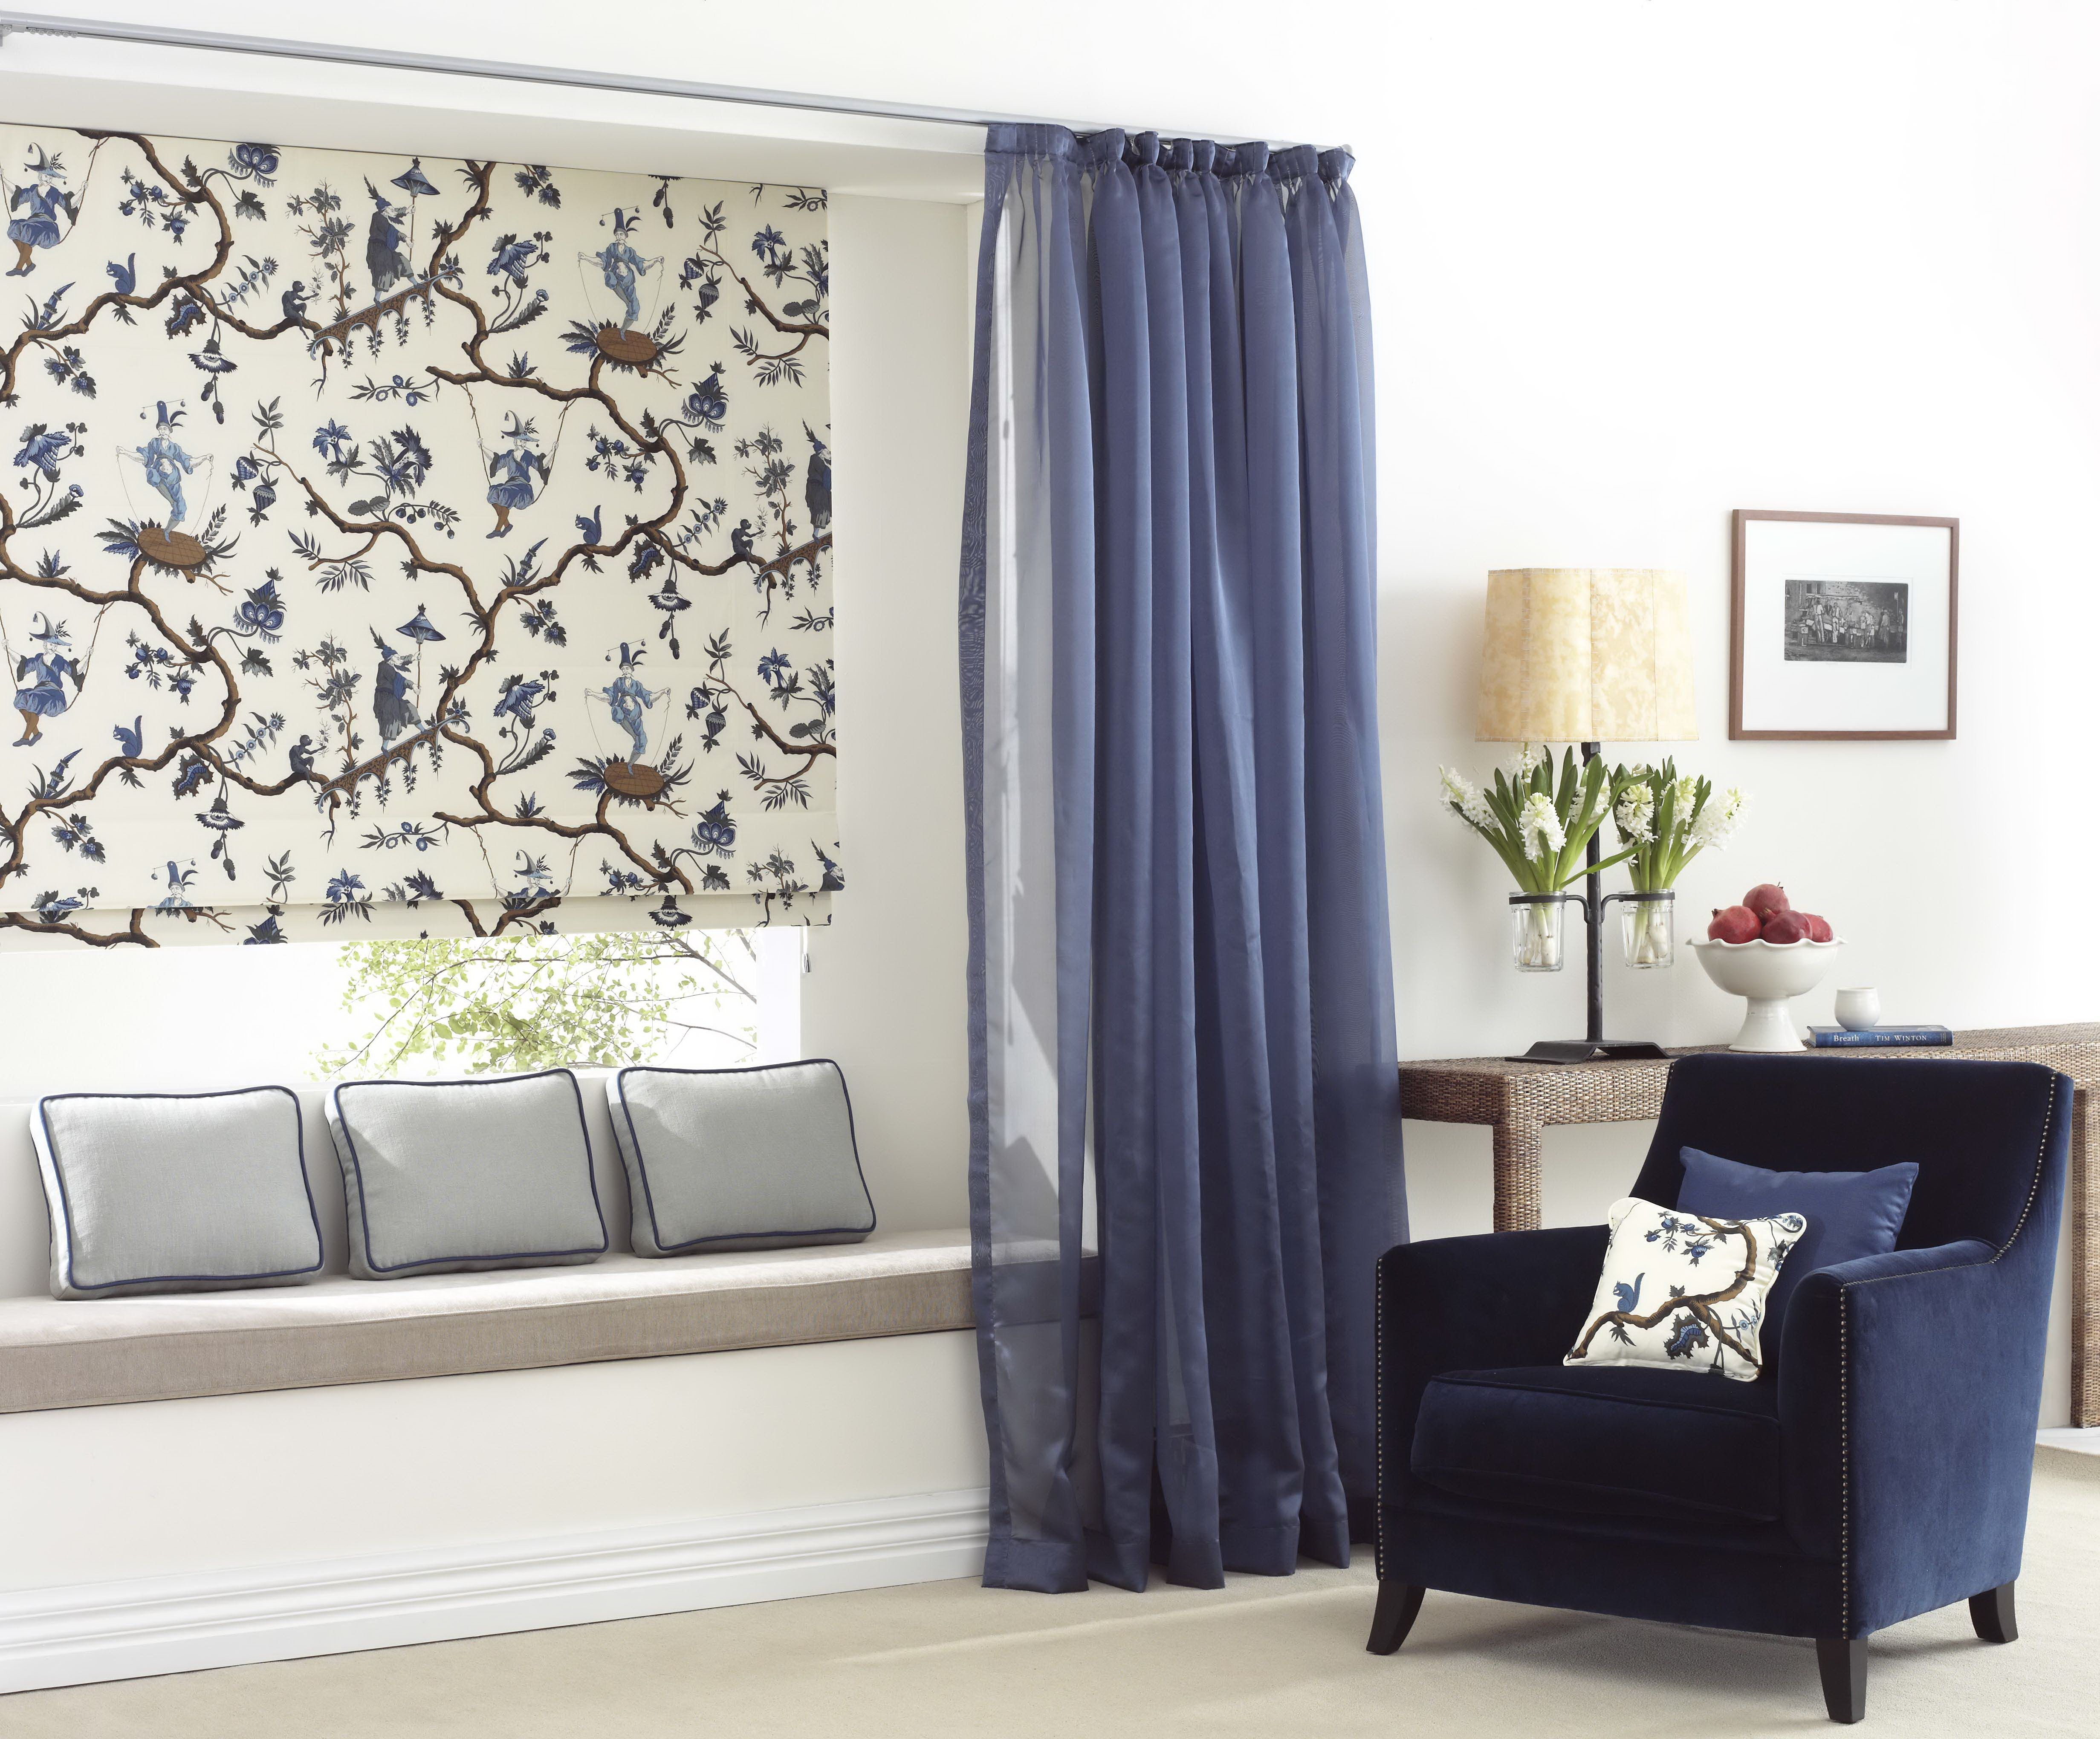 Diy Blinds Online Bonded Blind With Sheer Curtain Combination For More